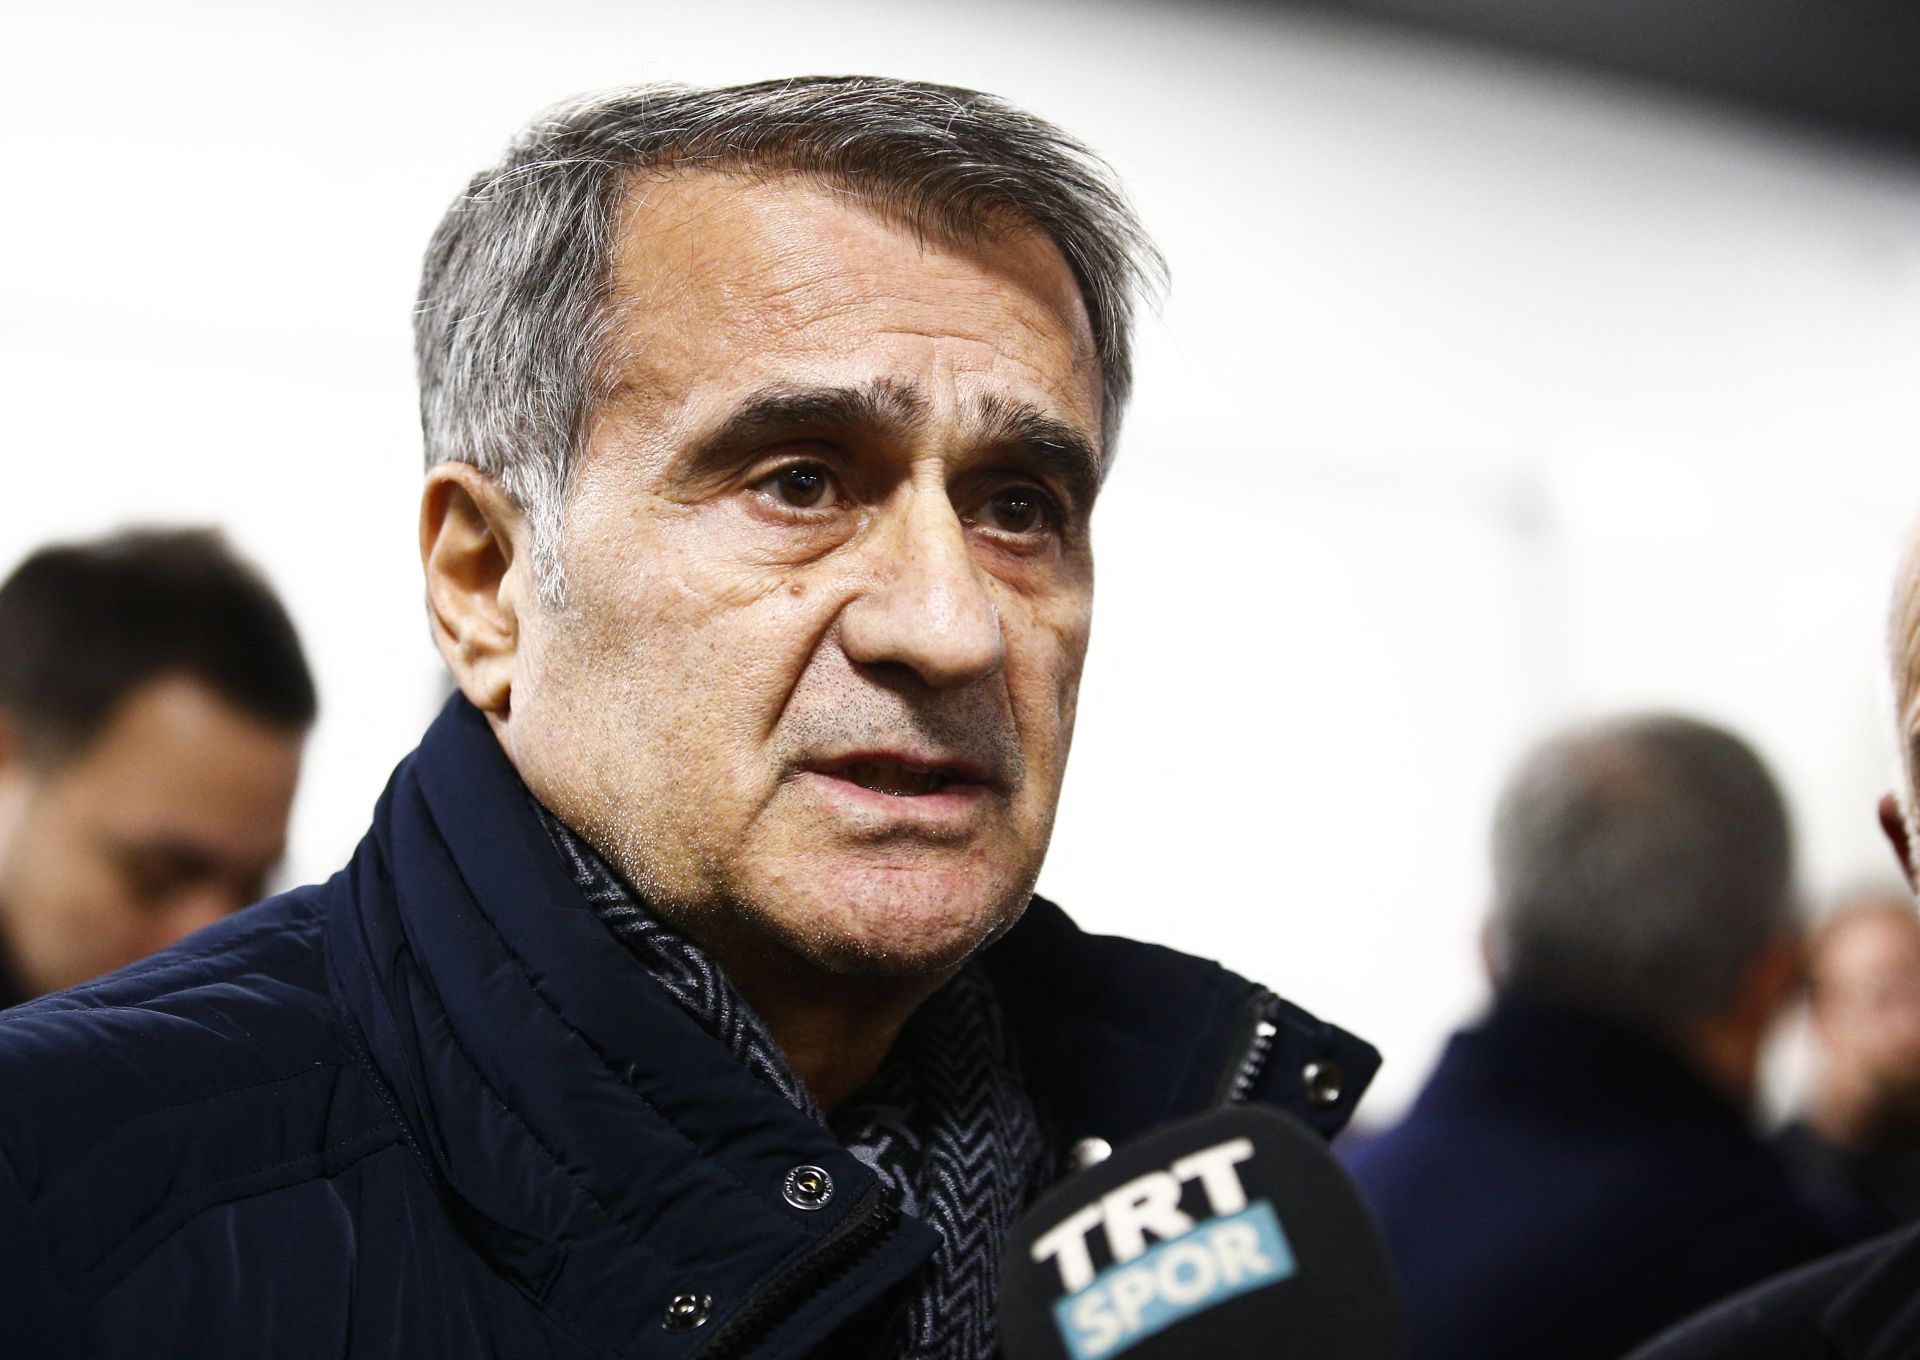 MOENCHENGLADBACH, GERMANY - DECEMBER 12: Head coach Senol Gunes of Turkey National Football Team speaks to media after the UEFA Europa League Group J match between Borussia Moenchengladbach and Medipol Basaksehir at the Borussia Park Stadium in Moenchengladbach, Germany on December 12, 2019. Abdulhamid Hosbas / Anadolu Agency/ABACAPRESS.COM FOT.ABACA/NEWSPIX.PL POLAND ONLY!!! --- Newspix.pl *** Local Caption *** www.newspix.pl mail us: info@newspix.pl call us: 0048 022 23 22 222 --- Polish Picture Agency by Ringier Axel Springer Poland